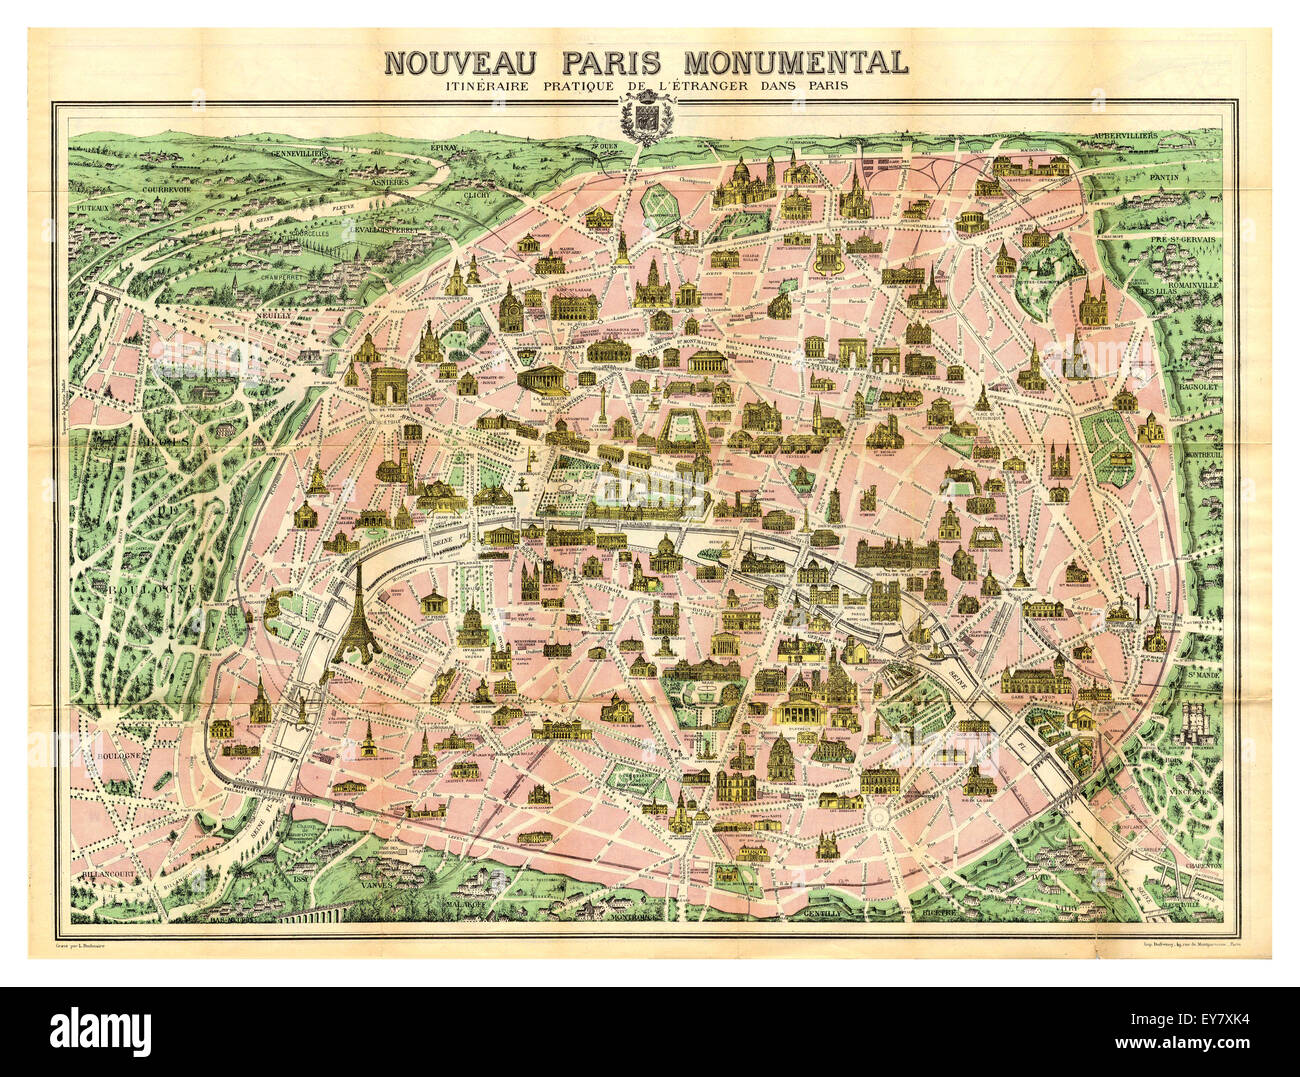 monumental map paris 1900s historic old map of important monuments and buildings in center of paris france